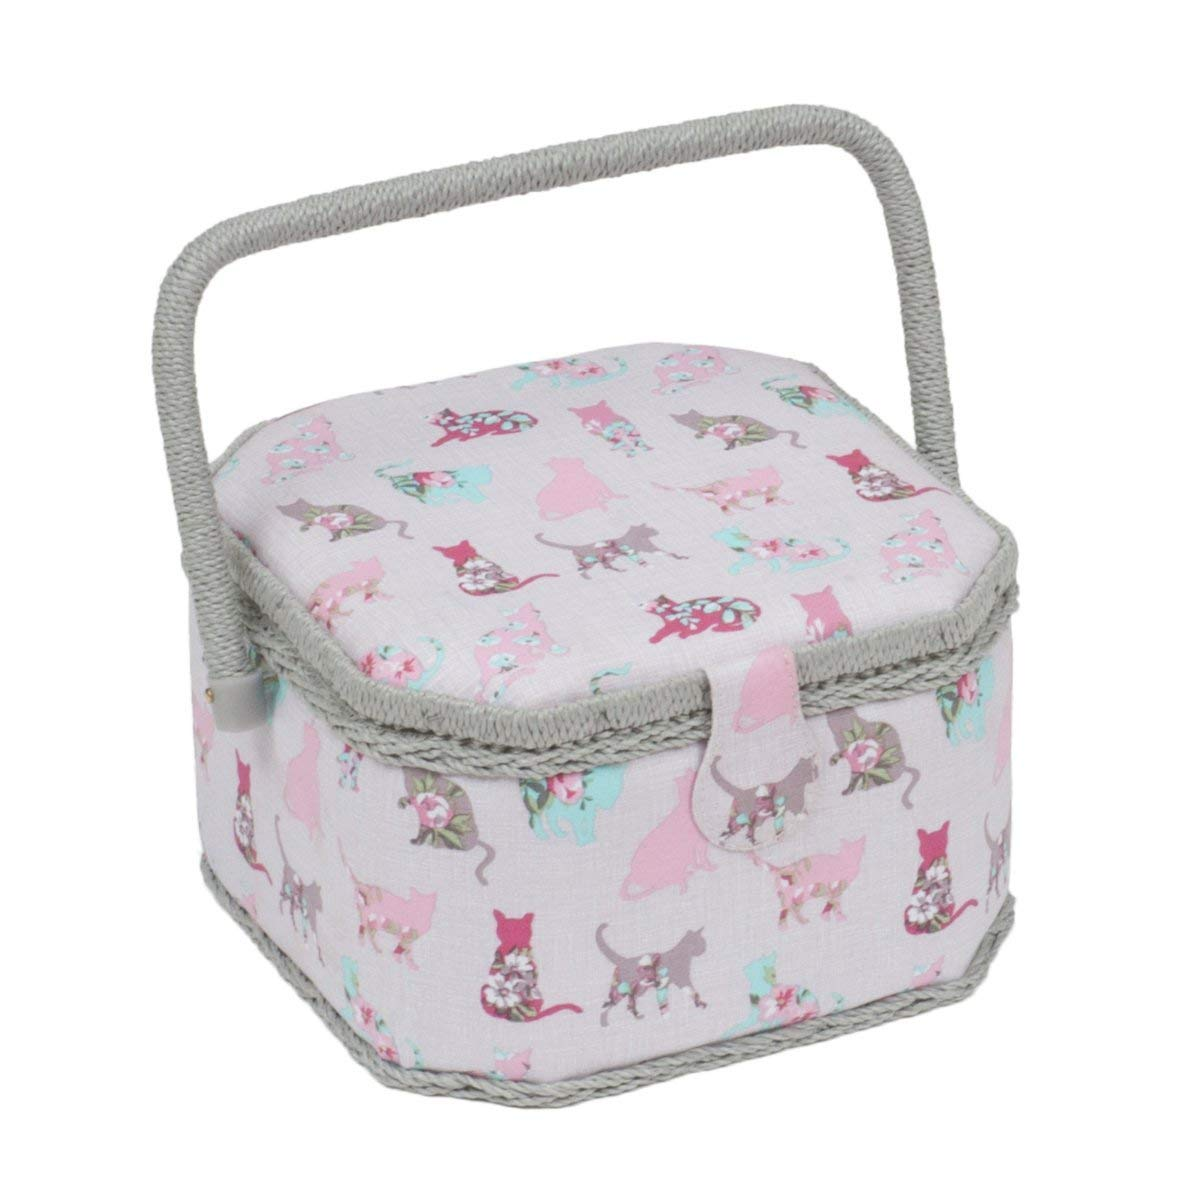 Hobby Gift Cactus Hoedown Sewing Basket 23 x 36 x 36cm d//w//h